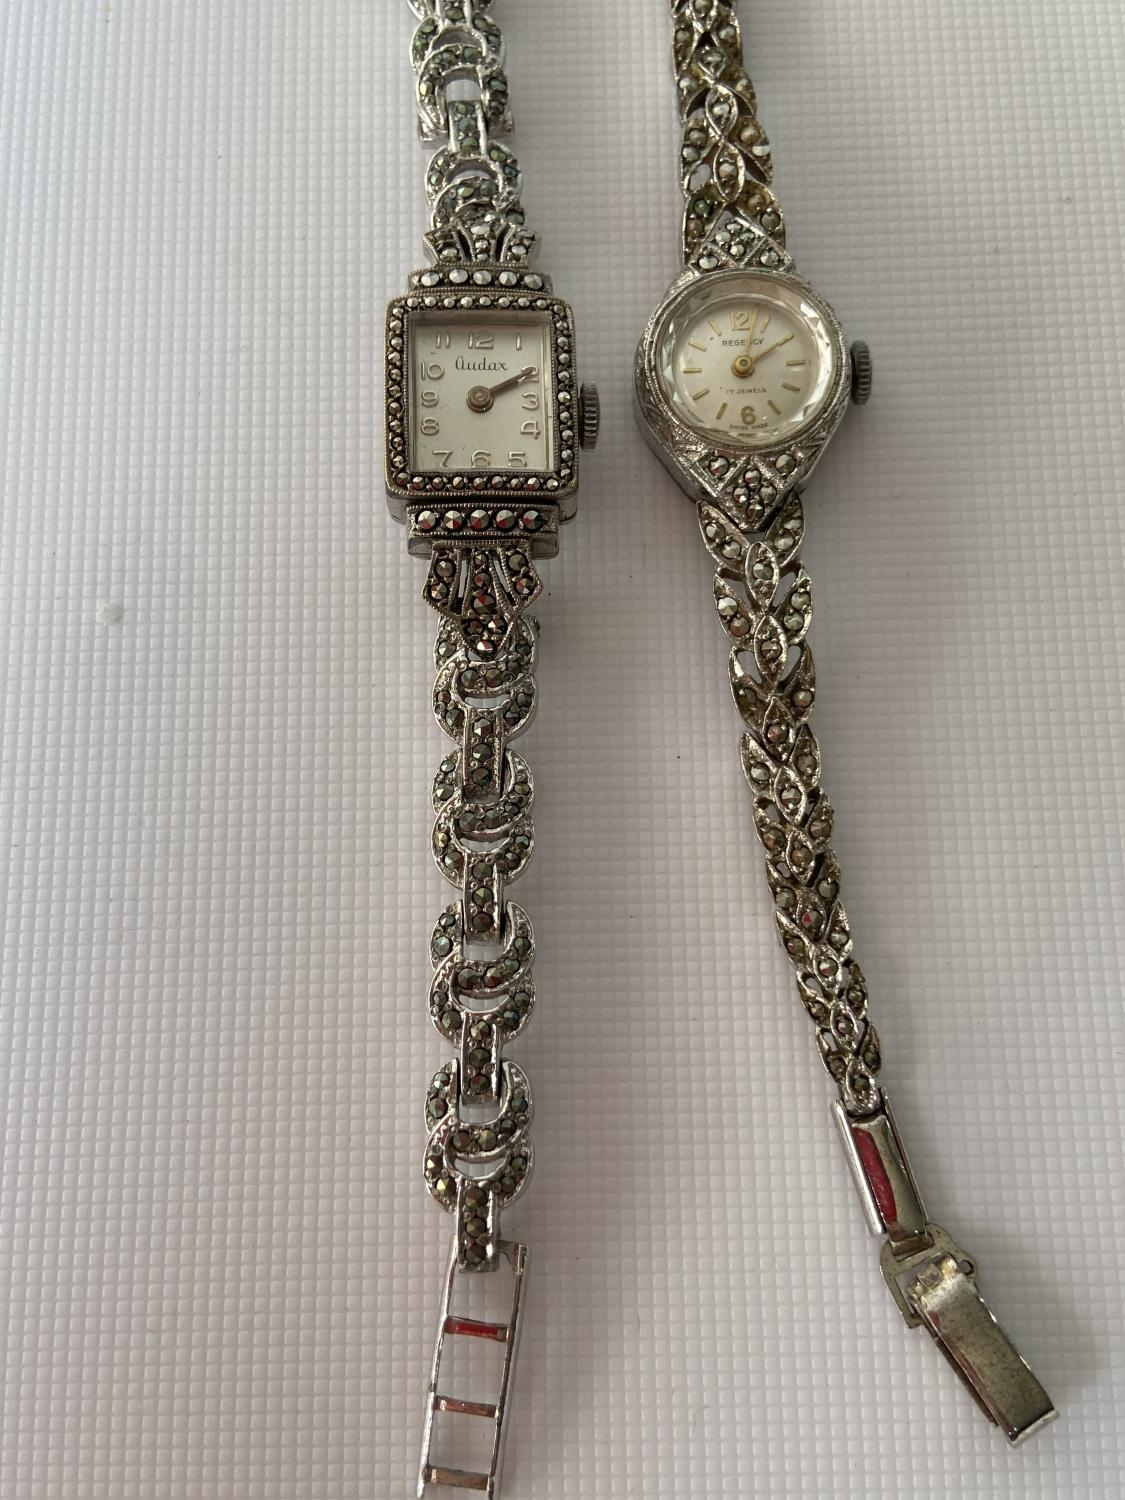 A vintage ladies 925 silver wrist watch produced by Regency [17 jewel] [working] fitted with - Image 6 of 6